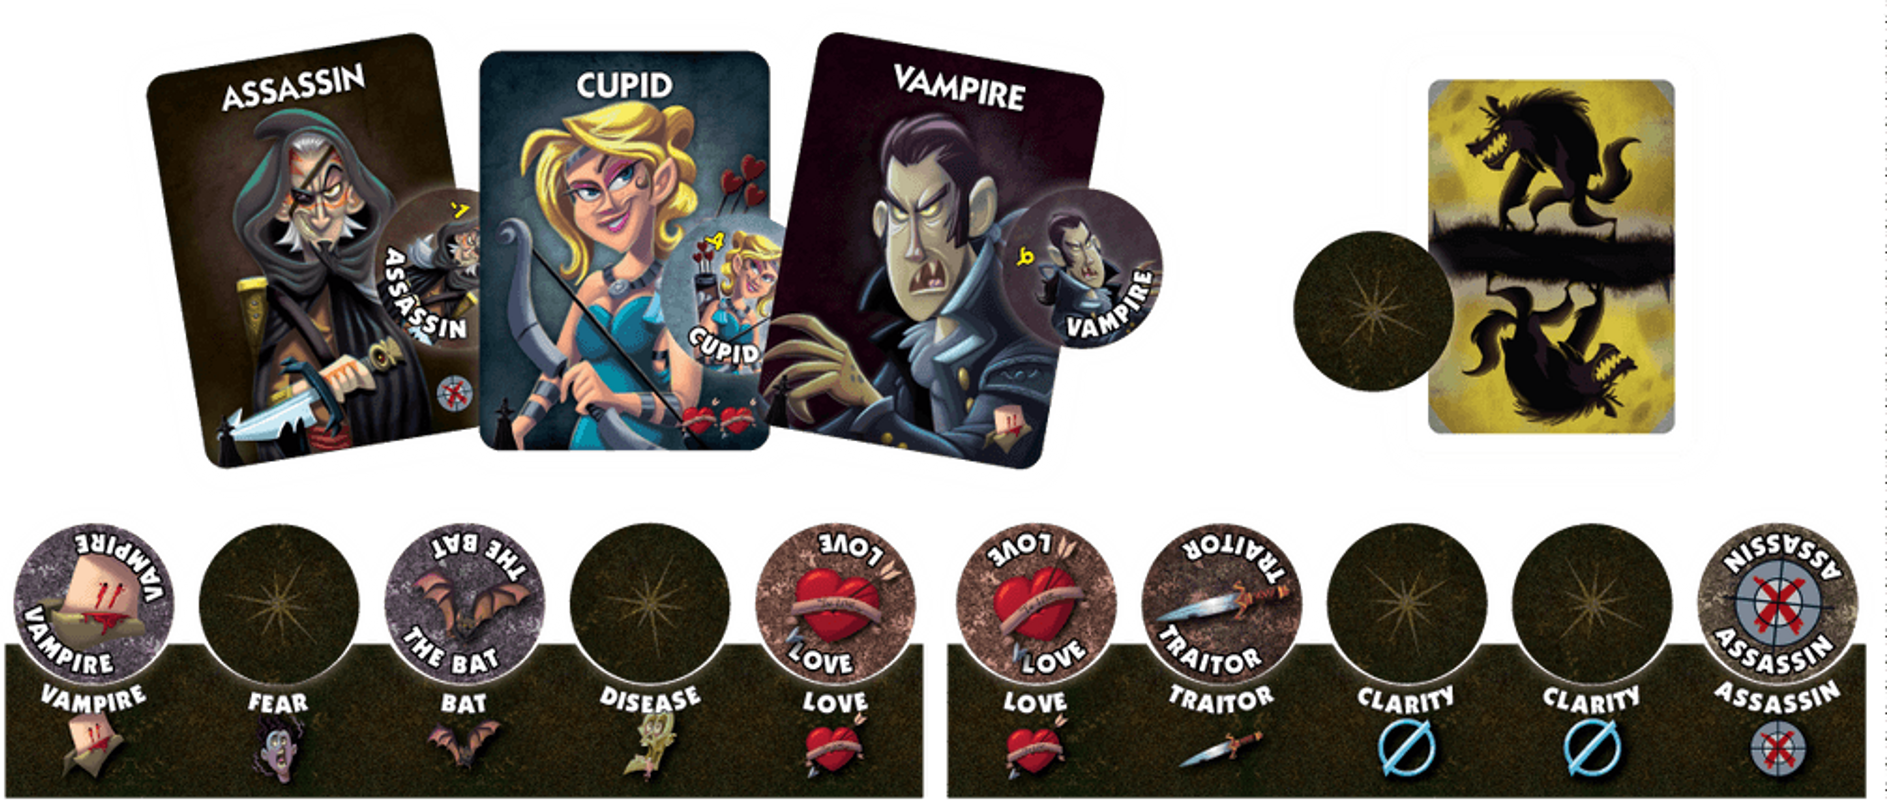 One Night Ultimate Vampire components